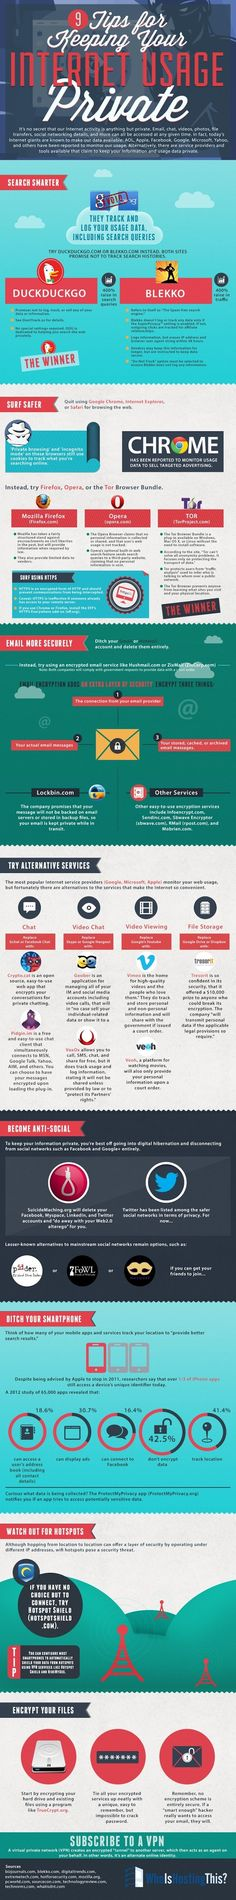 This Graphic Shows How to Keep Your Browsing, Email, and Chats Private